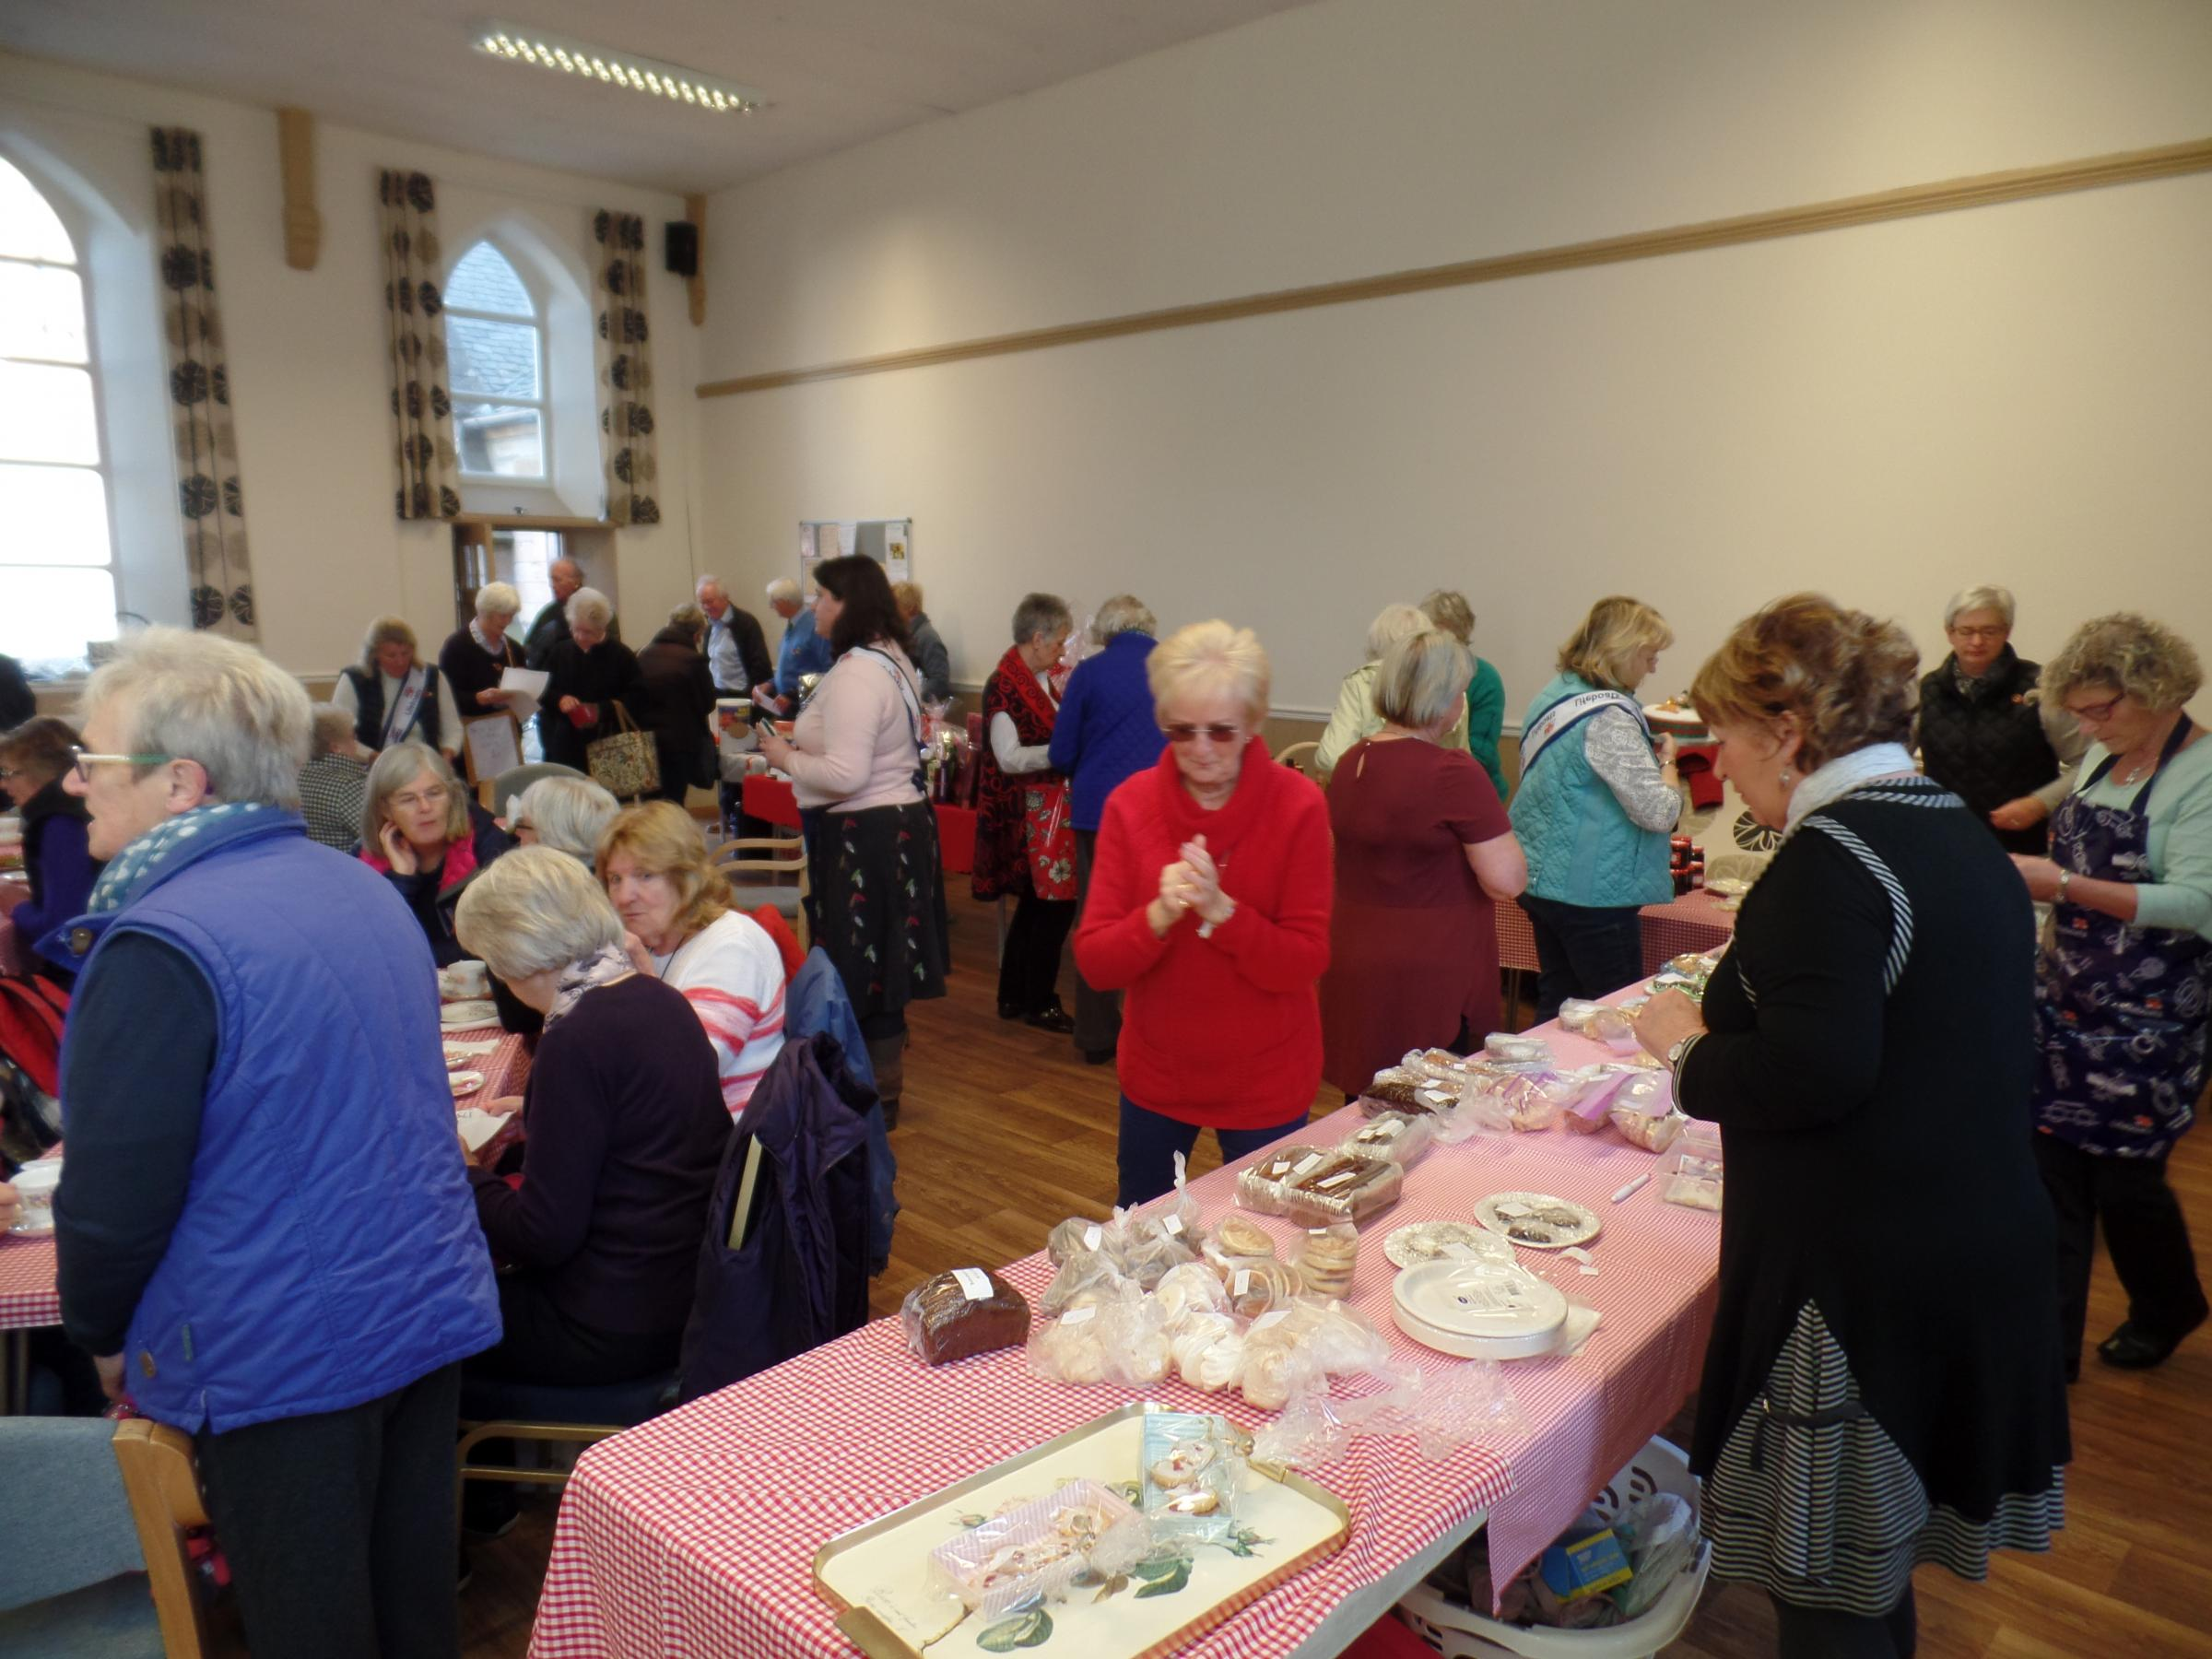 Helensburgh RNLI's fund-raising coffee morning takes place on November 3